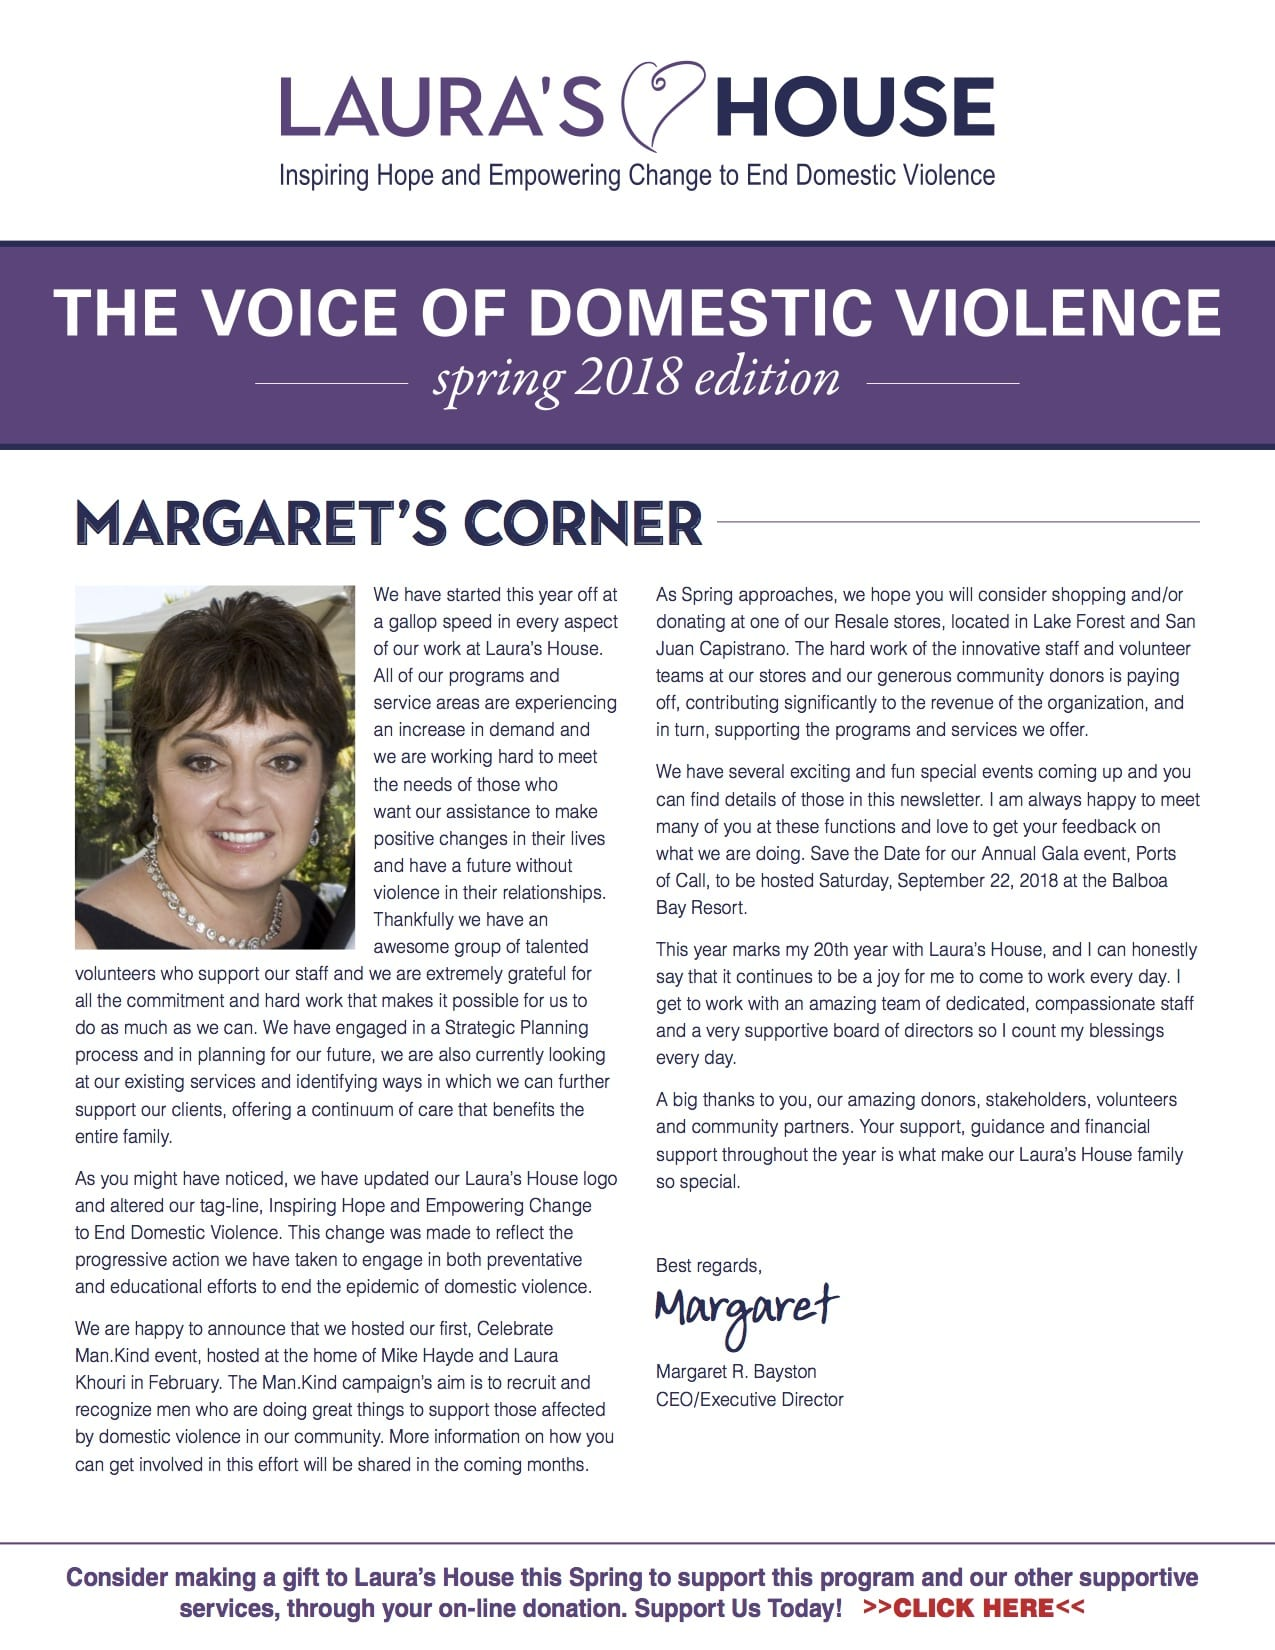 The Voice of Domestic Violence - Spring 2018 edition